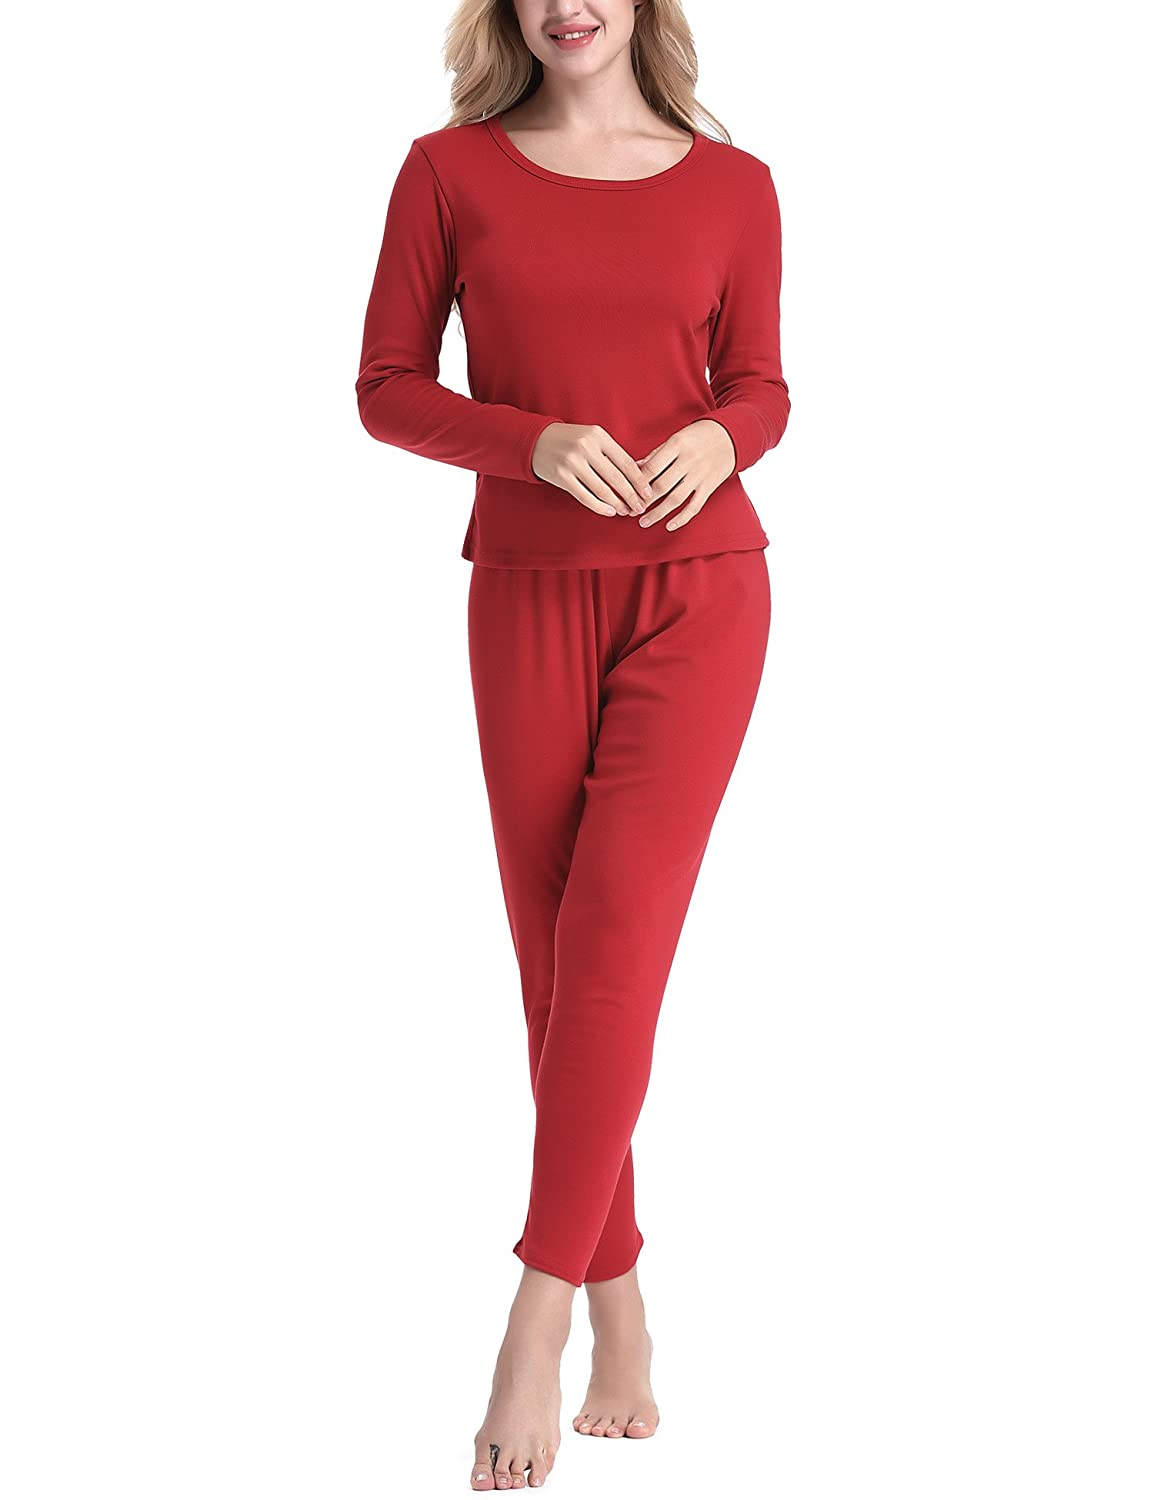 Yulee Women's Fleece Lined Thick Thermal Underwear Set Base Layering Top & Bottom